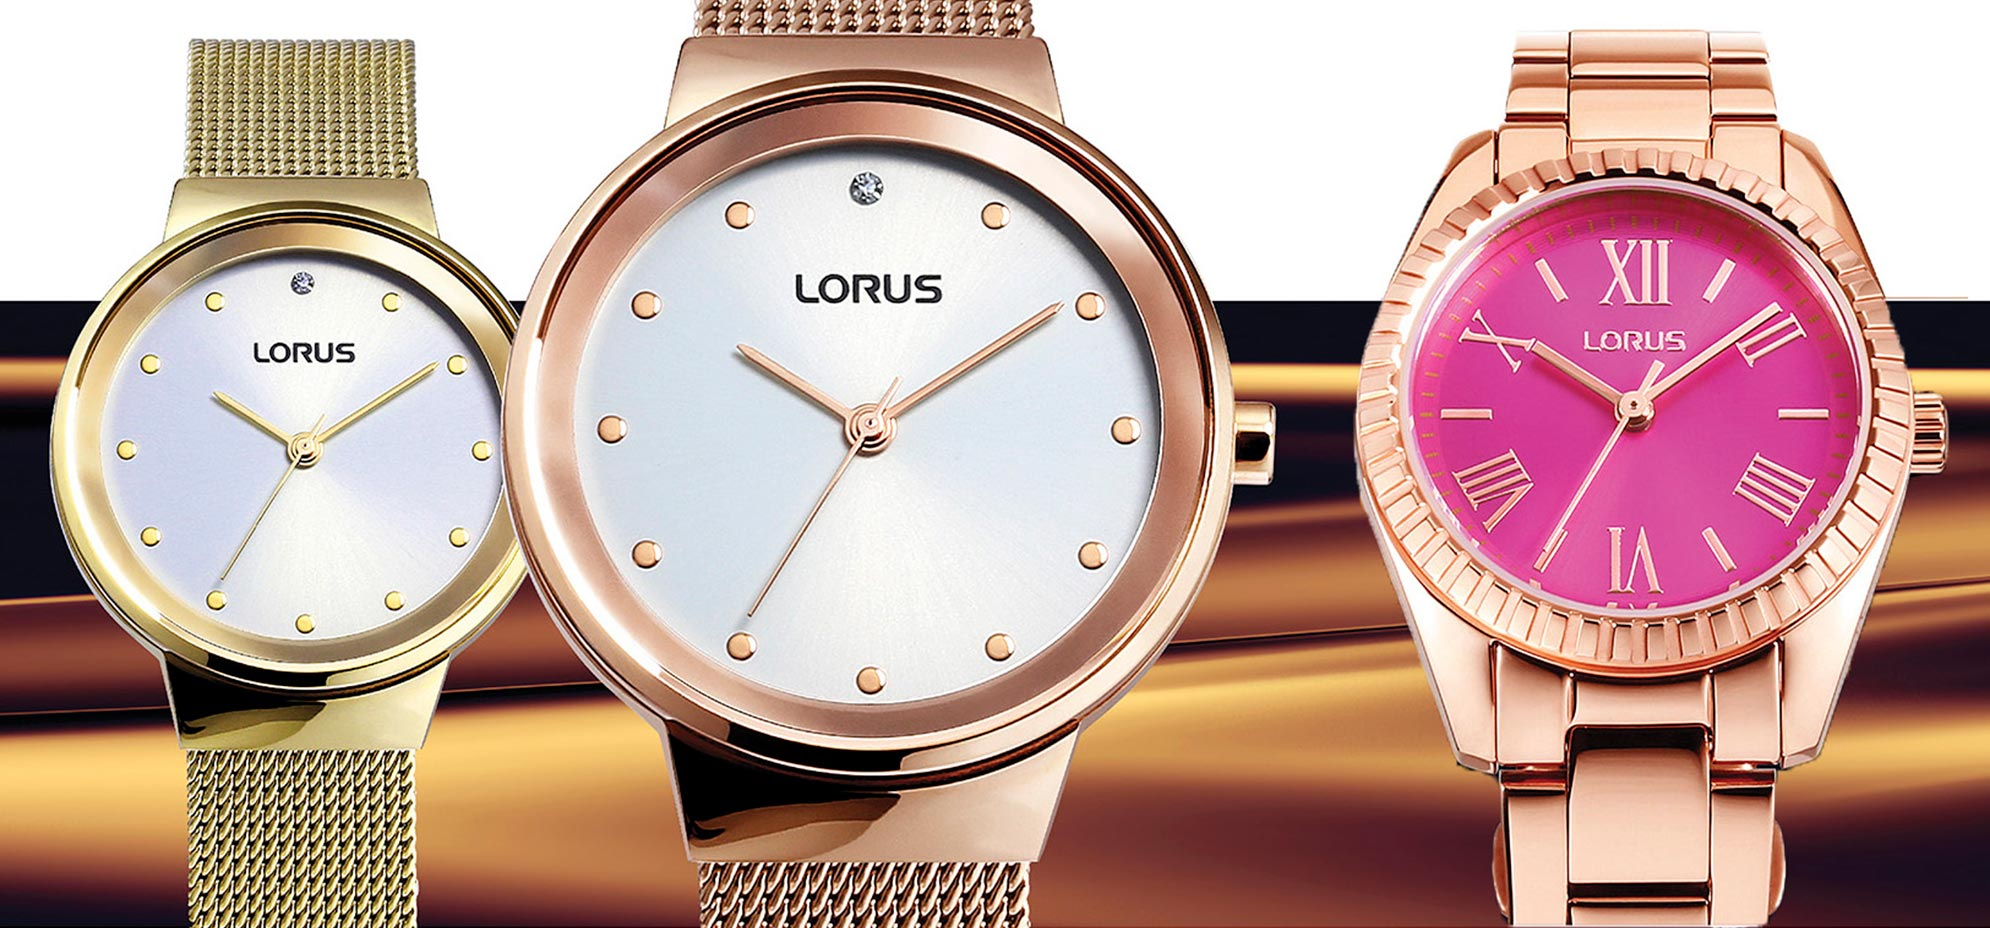 Lorus 2015 The Women's Collection